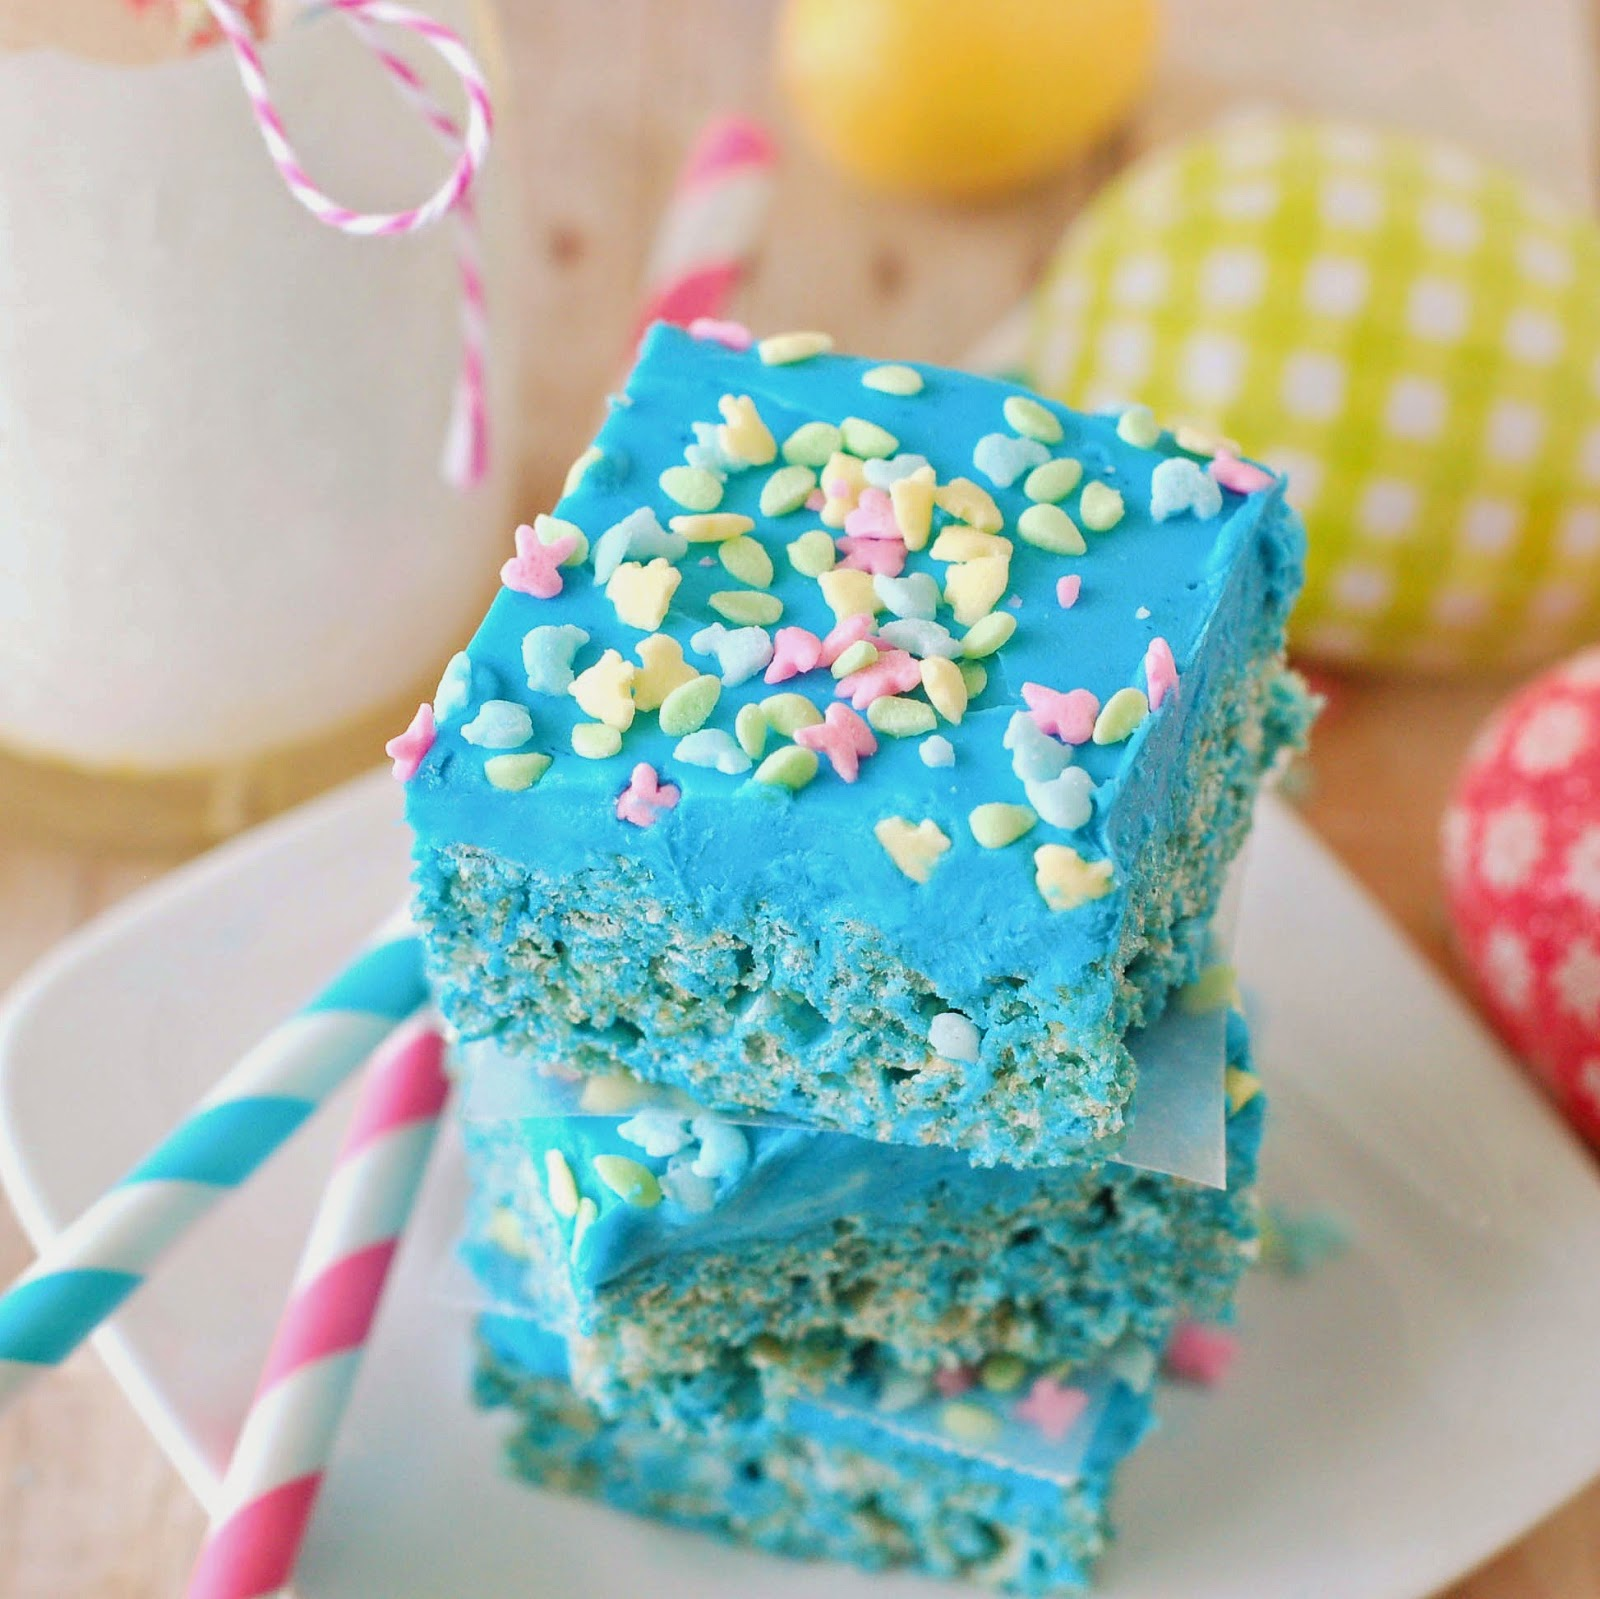 Blue Raspberry Rice Krispies by The Sweet Chick